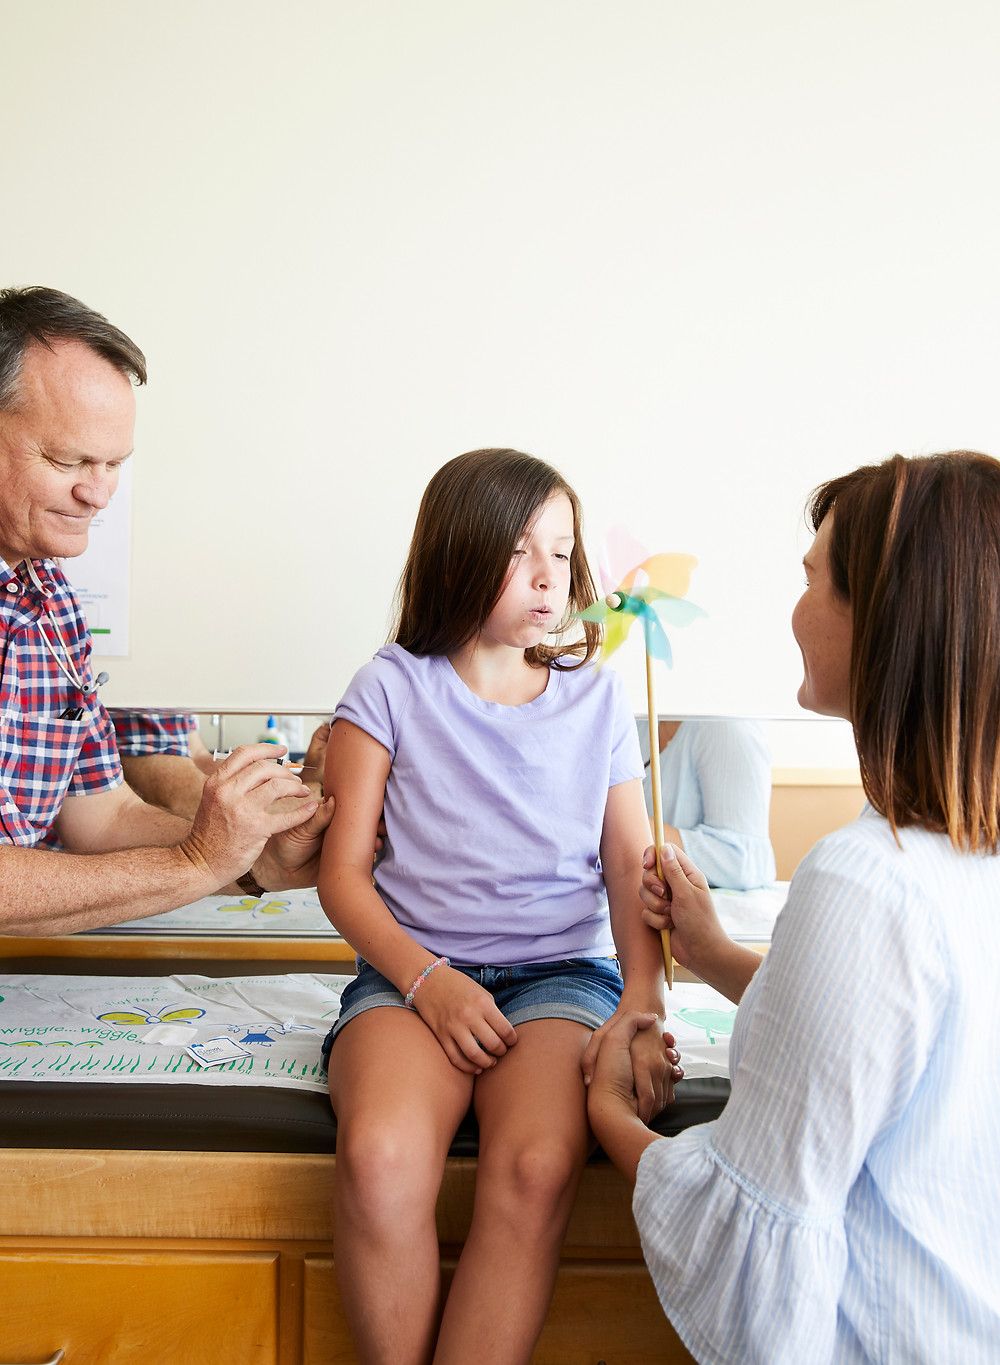 child blowing pinwheel while getting a shot at the doctor